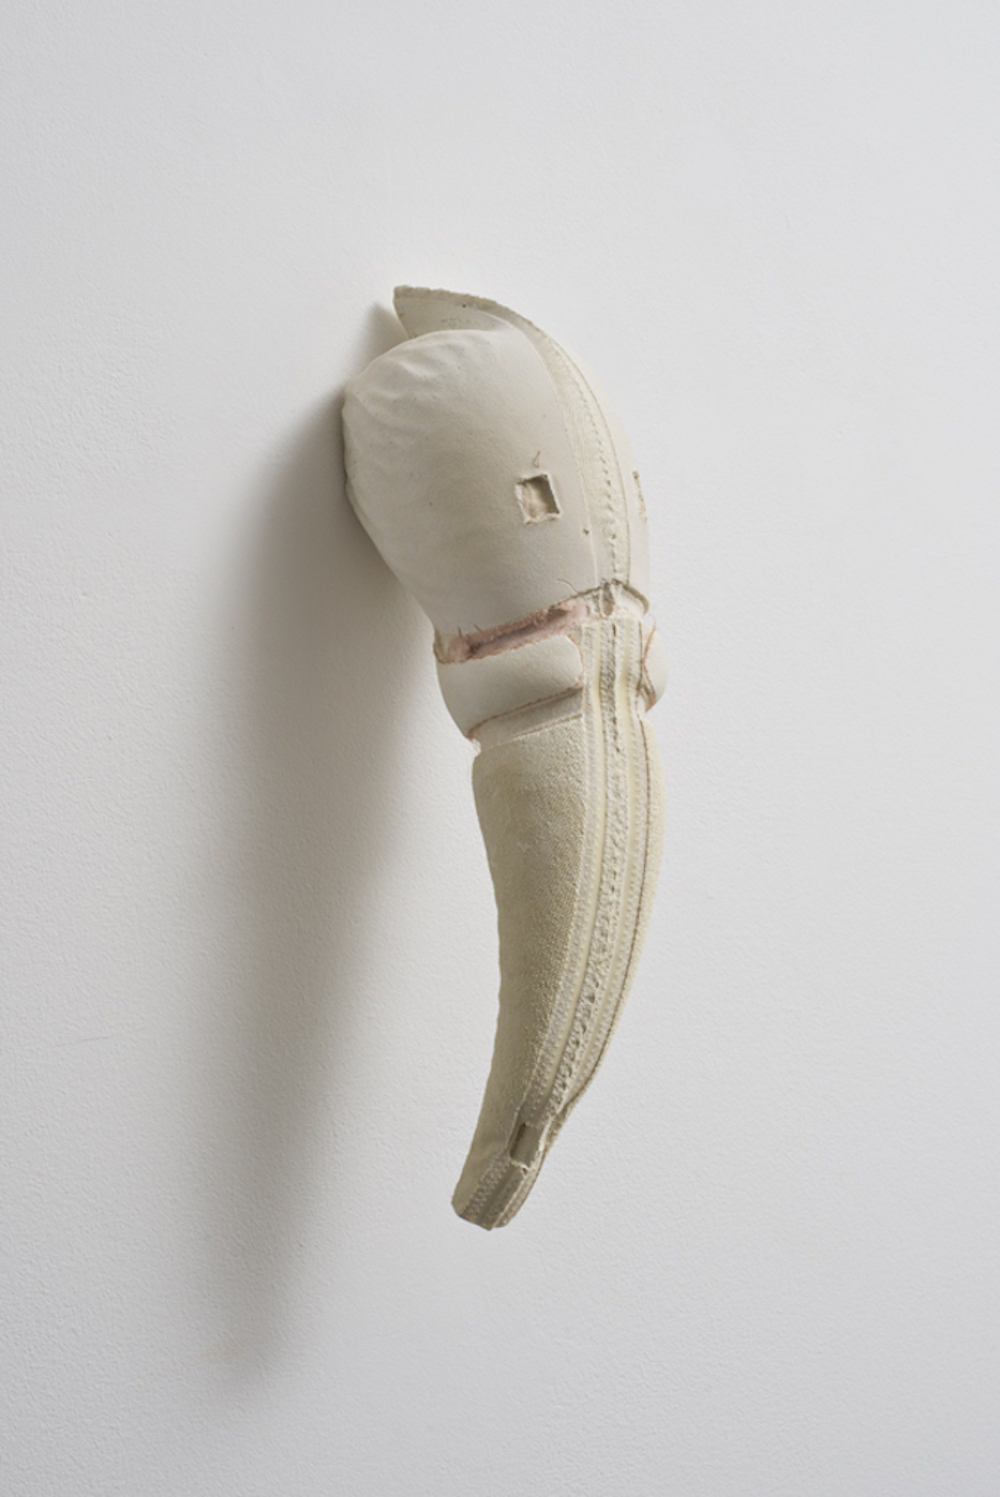 01 Untitled (STB), 2011, plaster 28 x 13 x 11 cm (cast of inside of a bra, one from series) photo Michael Brzezinski